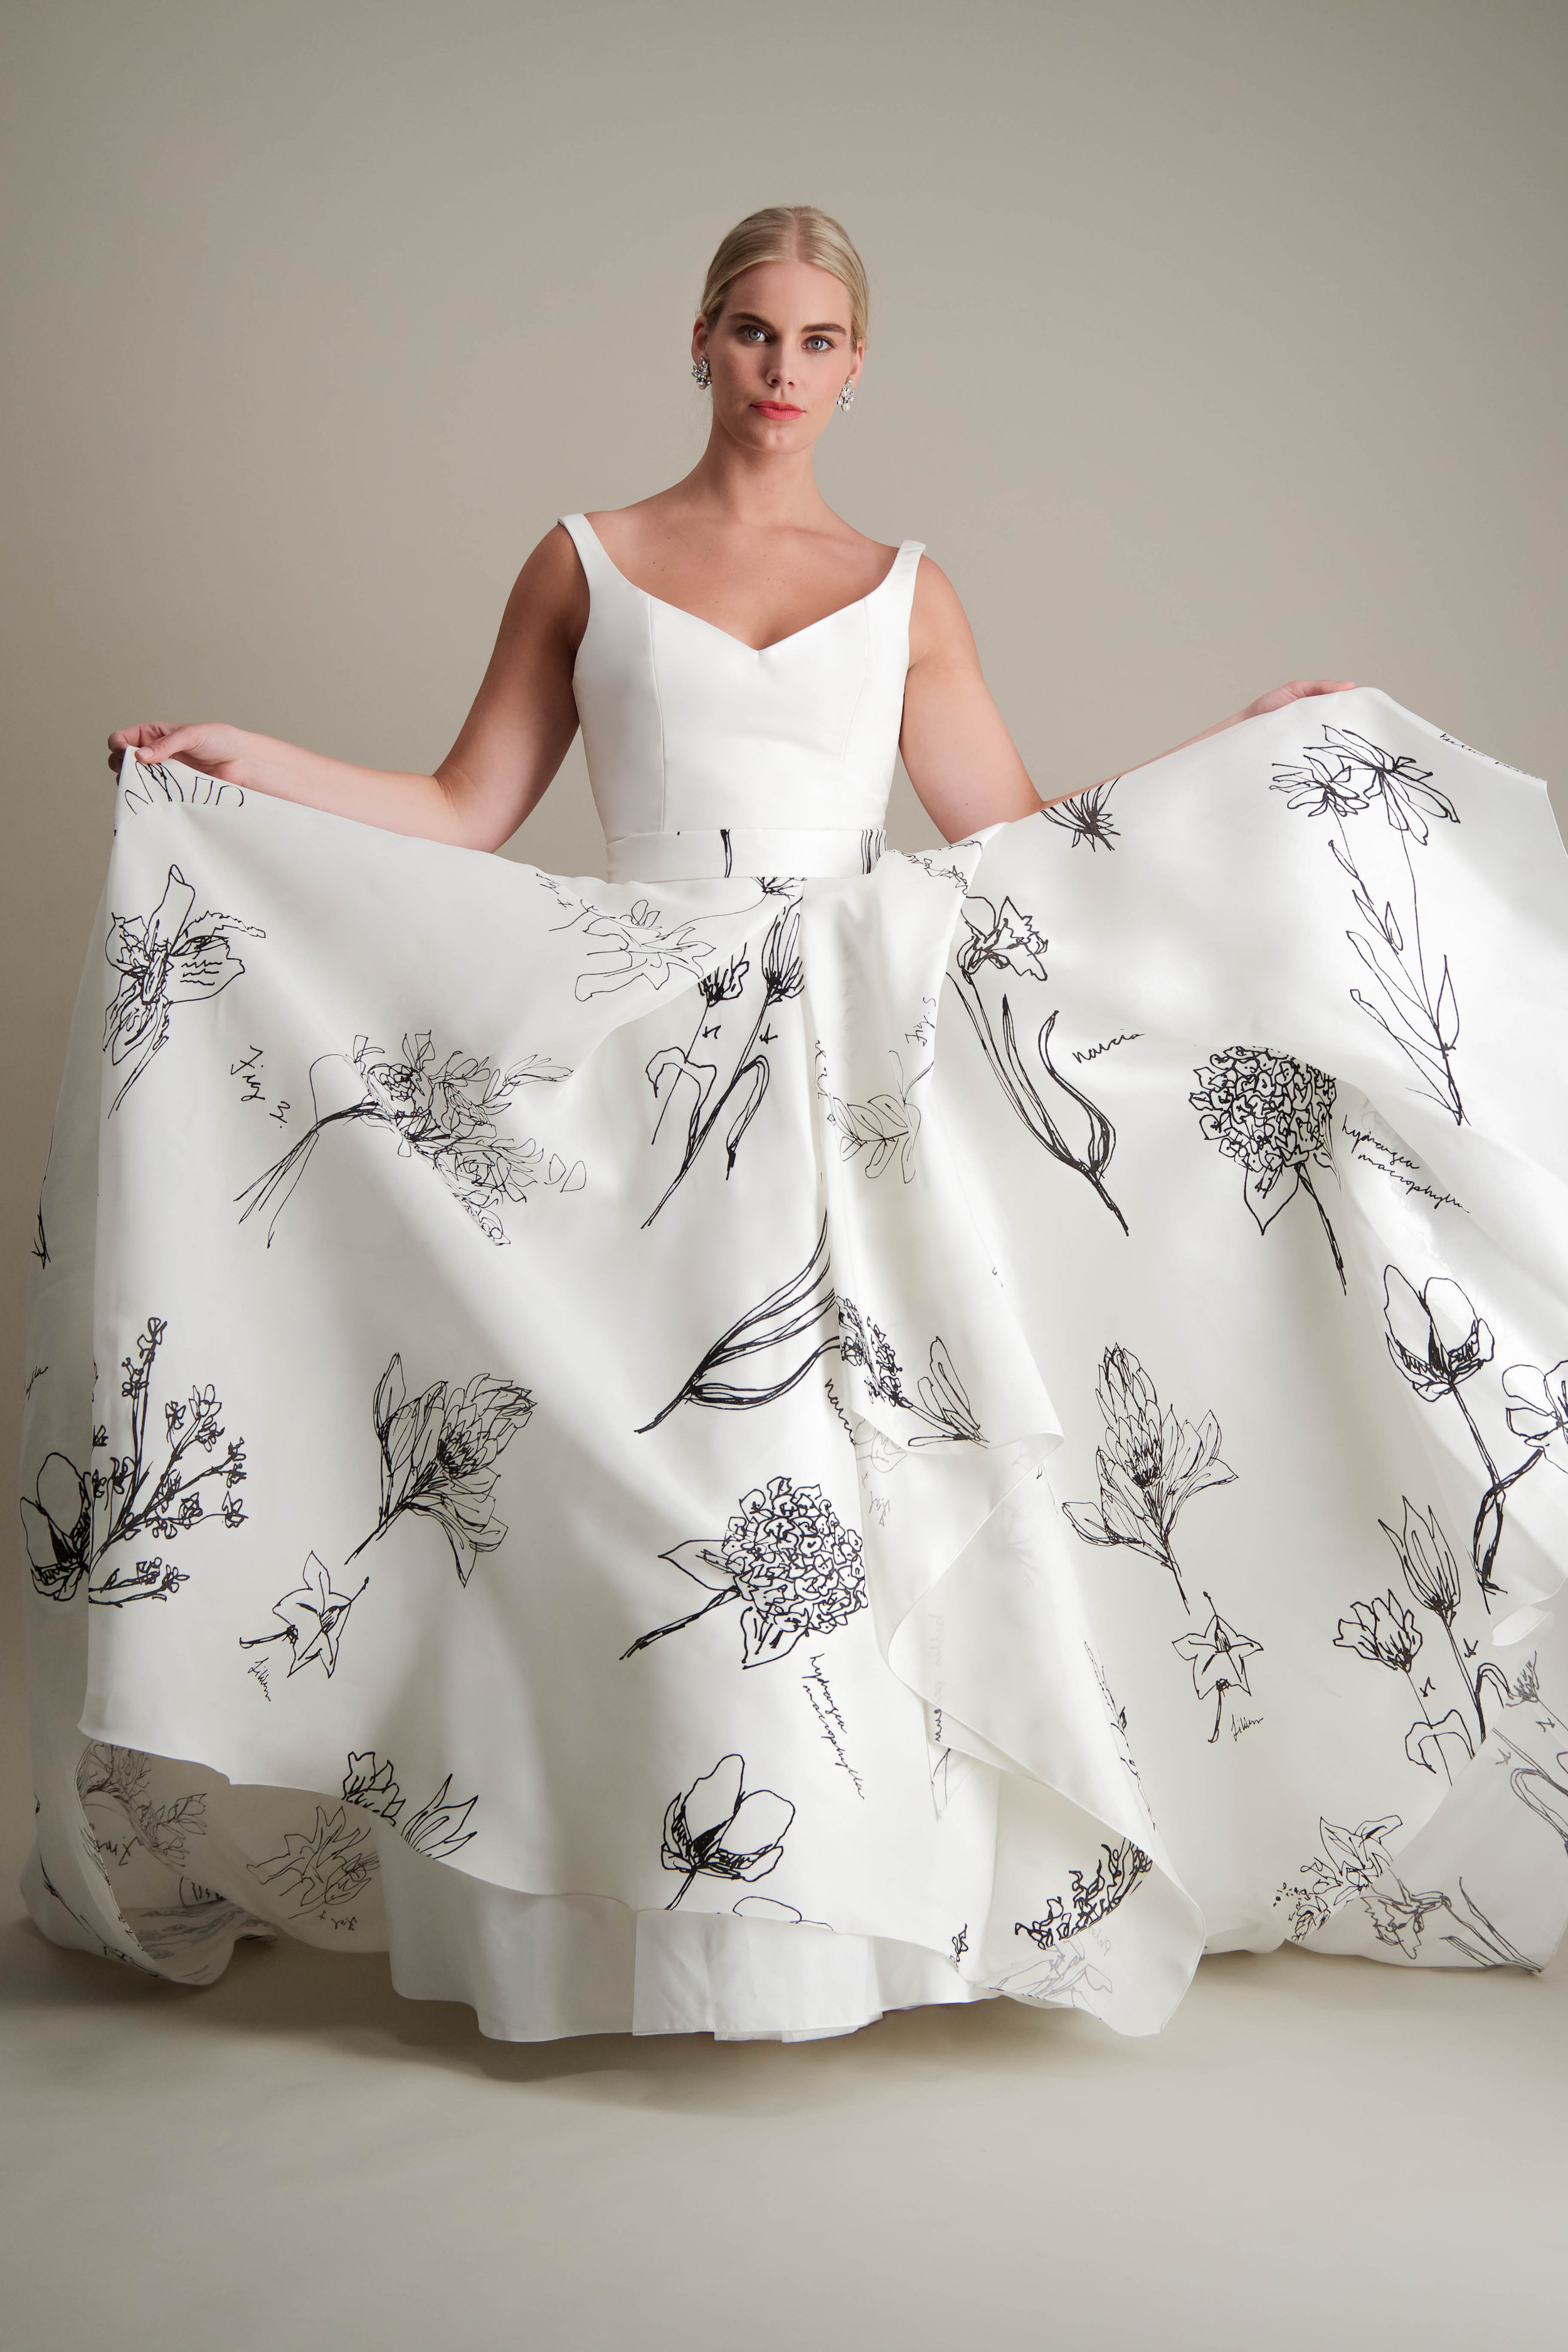 anthorium-skirt-ball-gown-printed-black-and-white-gown-3.jpg